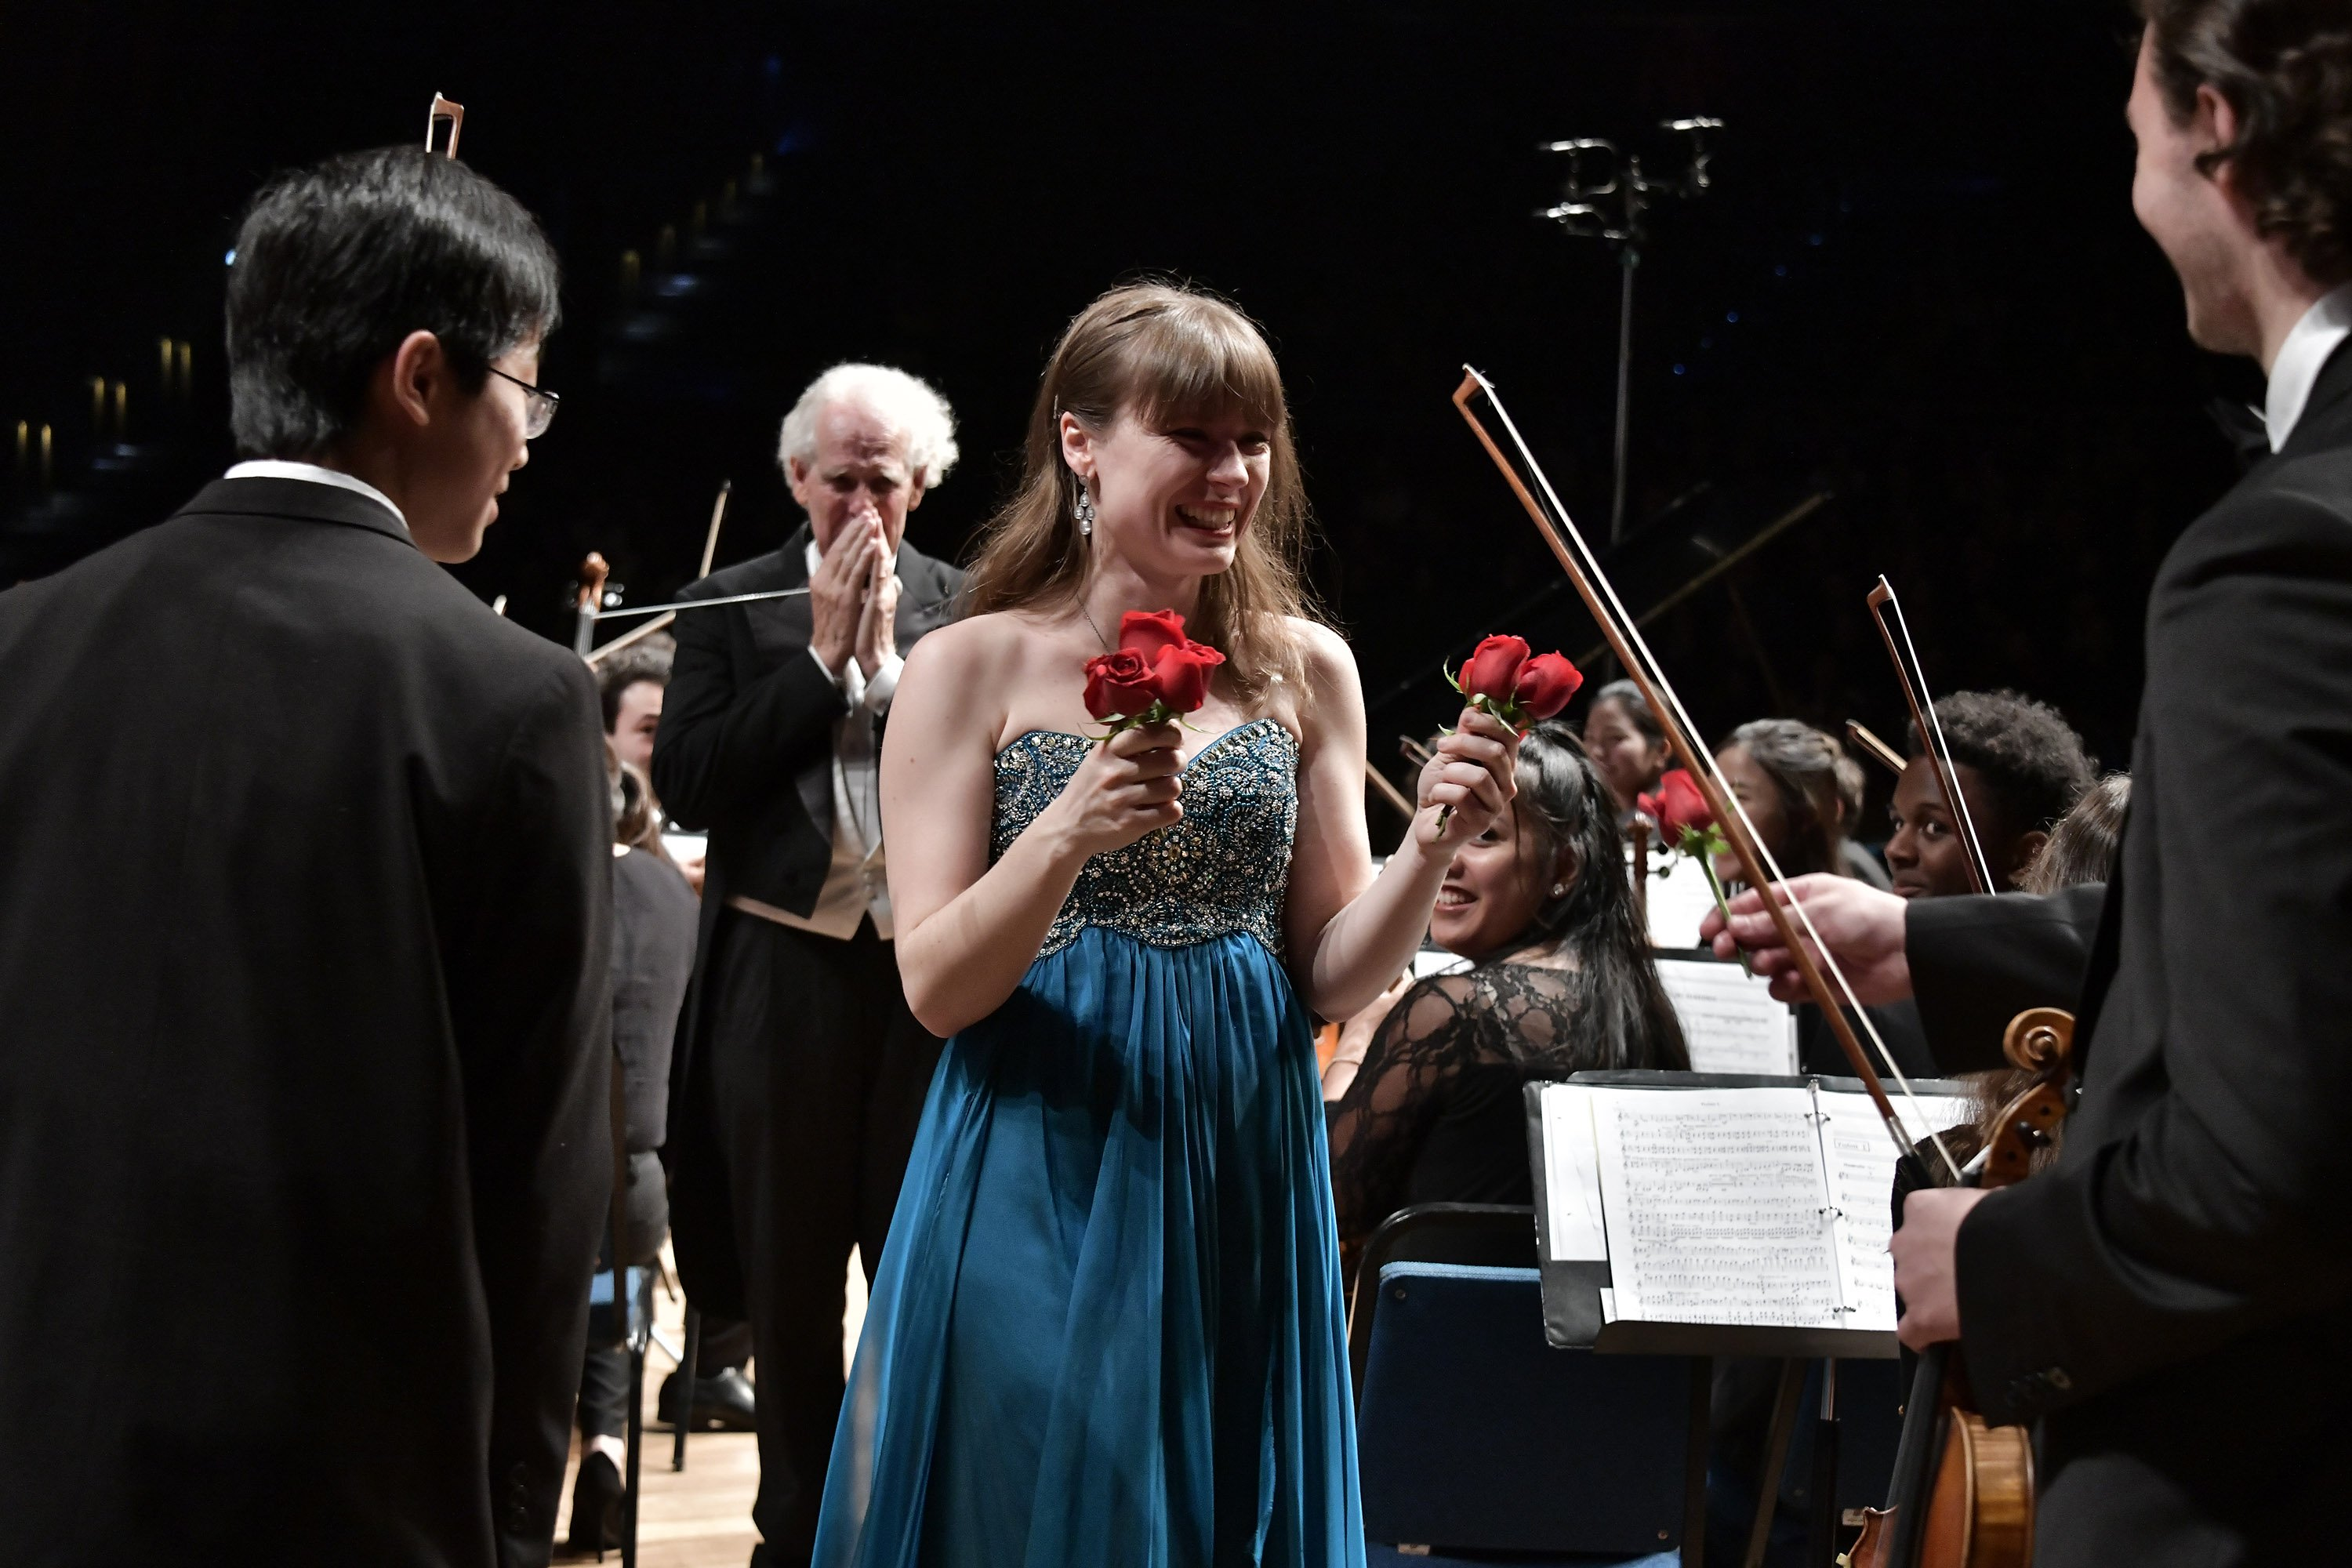 Anna Federova receives roses from the violinists.